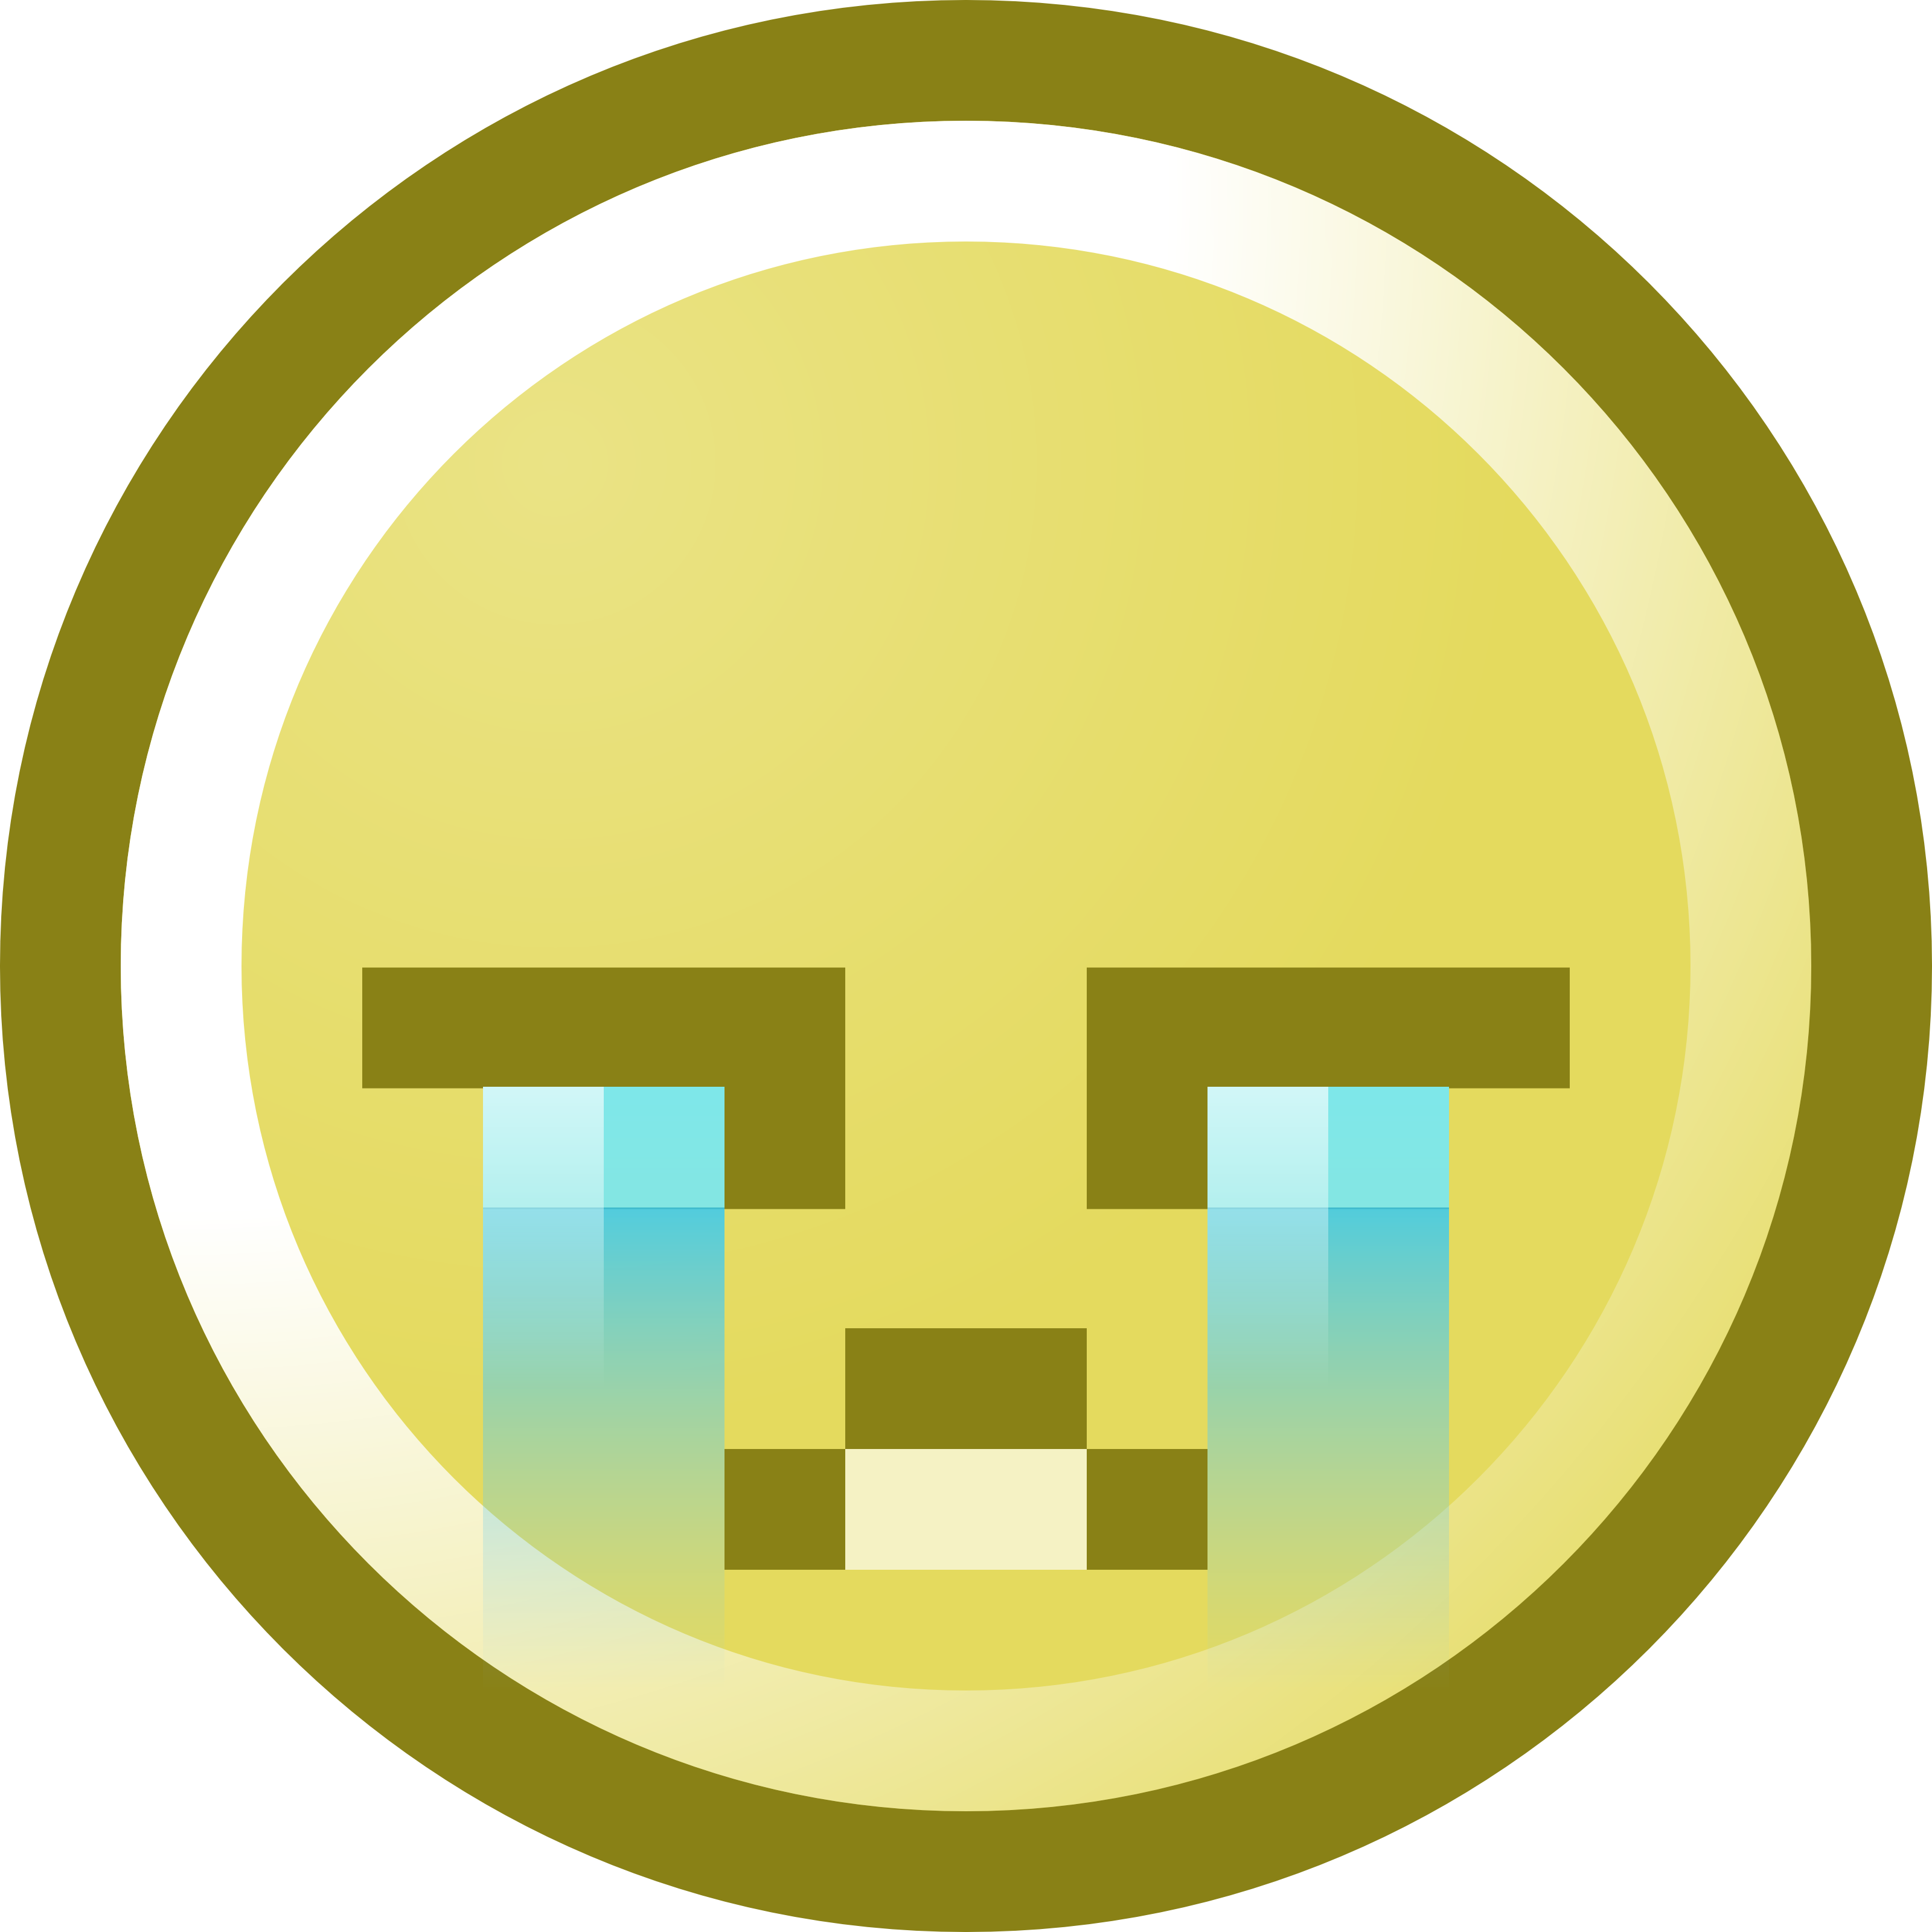 Free Crying Smiley Face Clip Art Illustration By 000128